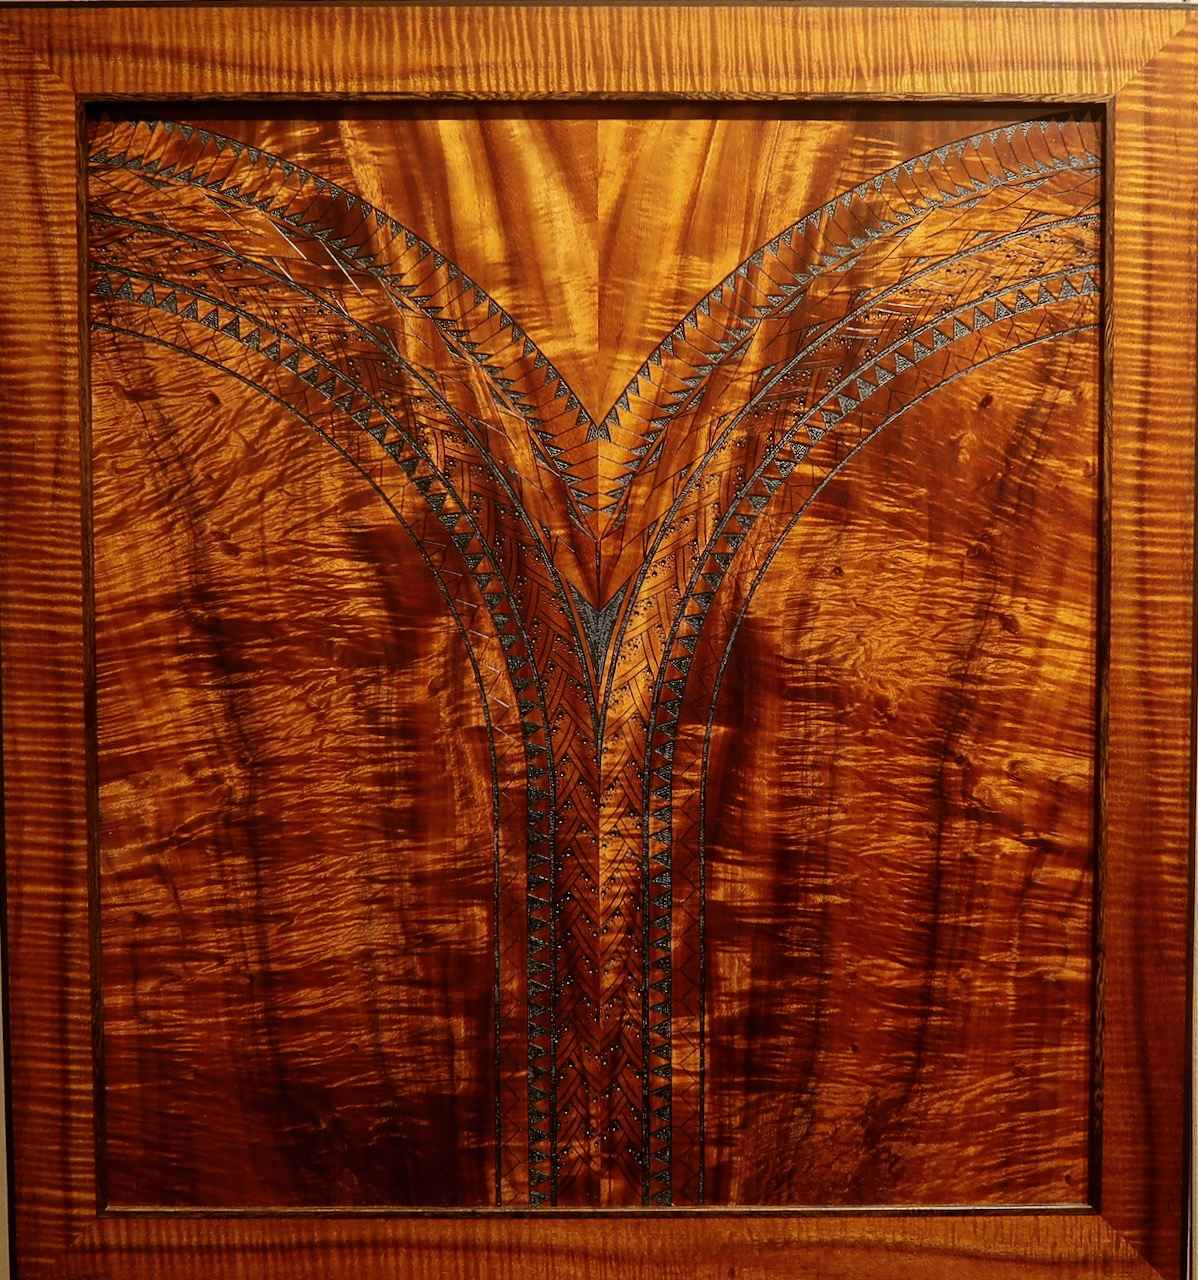 Focal Point_2020 HWG by Mr. Duane Millers - Masterpiece Online